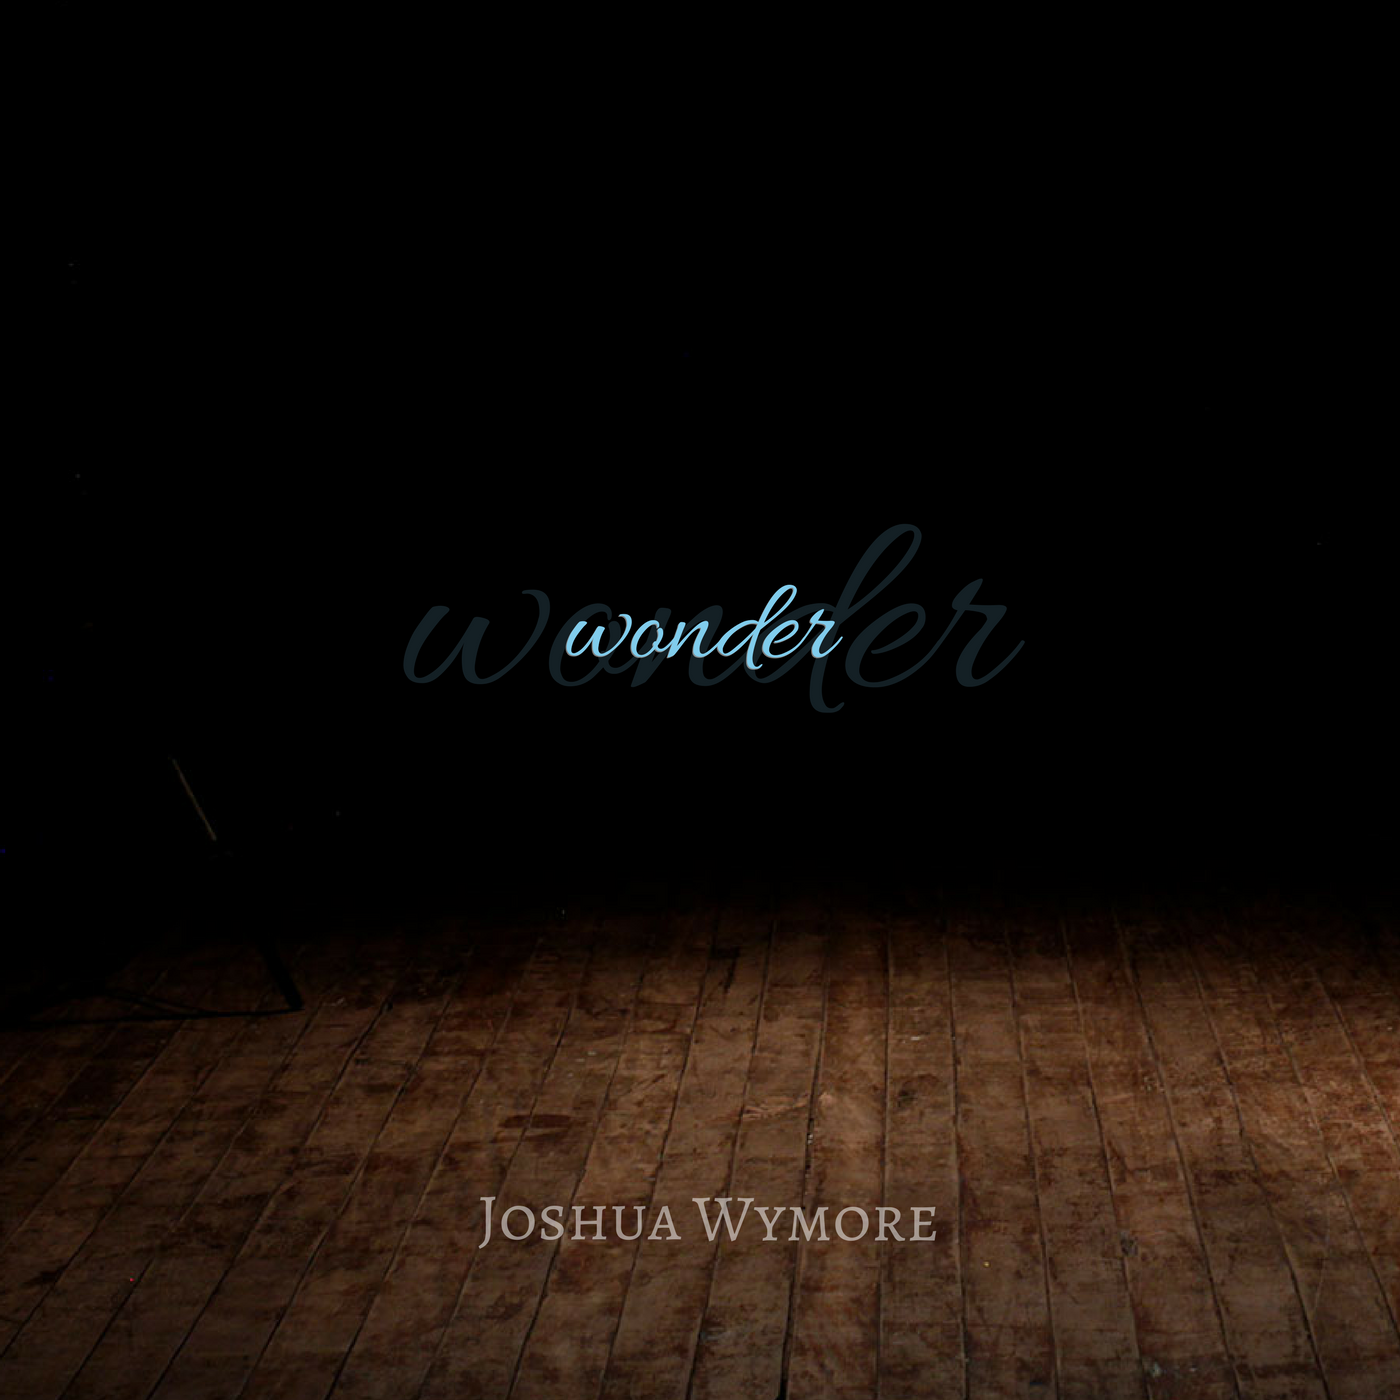 Wonder - Back in September 2004, I had a powerful encounter with the Holy Spirit that absolutely changed my life. I was already writing songs but as you can imagine, it's impossible to have a life-changing experience with God and it not impact every area of life--including your song writing. As we approached the Christmas season that year, I was again impacted by the sheer wonder of the incarnation as I pondered in His presence. This led to worship, which led to the birthing of this song. I wept while I wrote it. And, 13 years later when I recorded it, I wept again just about every time I worked on it (at least a month long process). I sincerely pray that you are moved to tearful worship as you listen and contemplate with me that